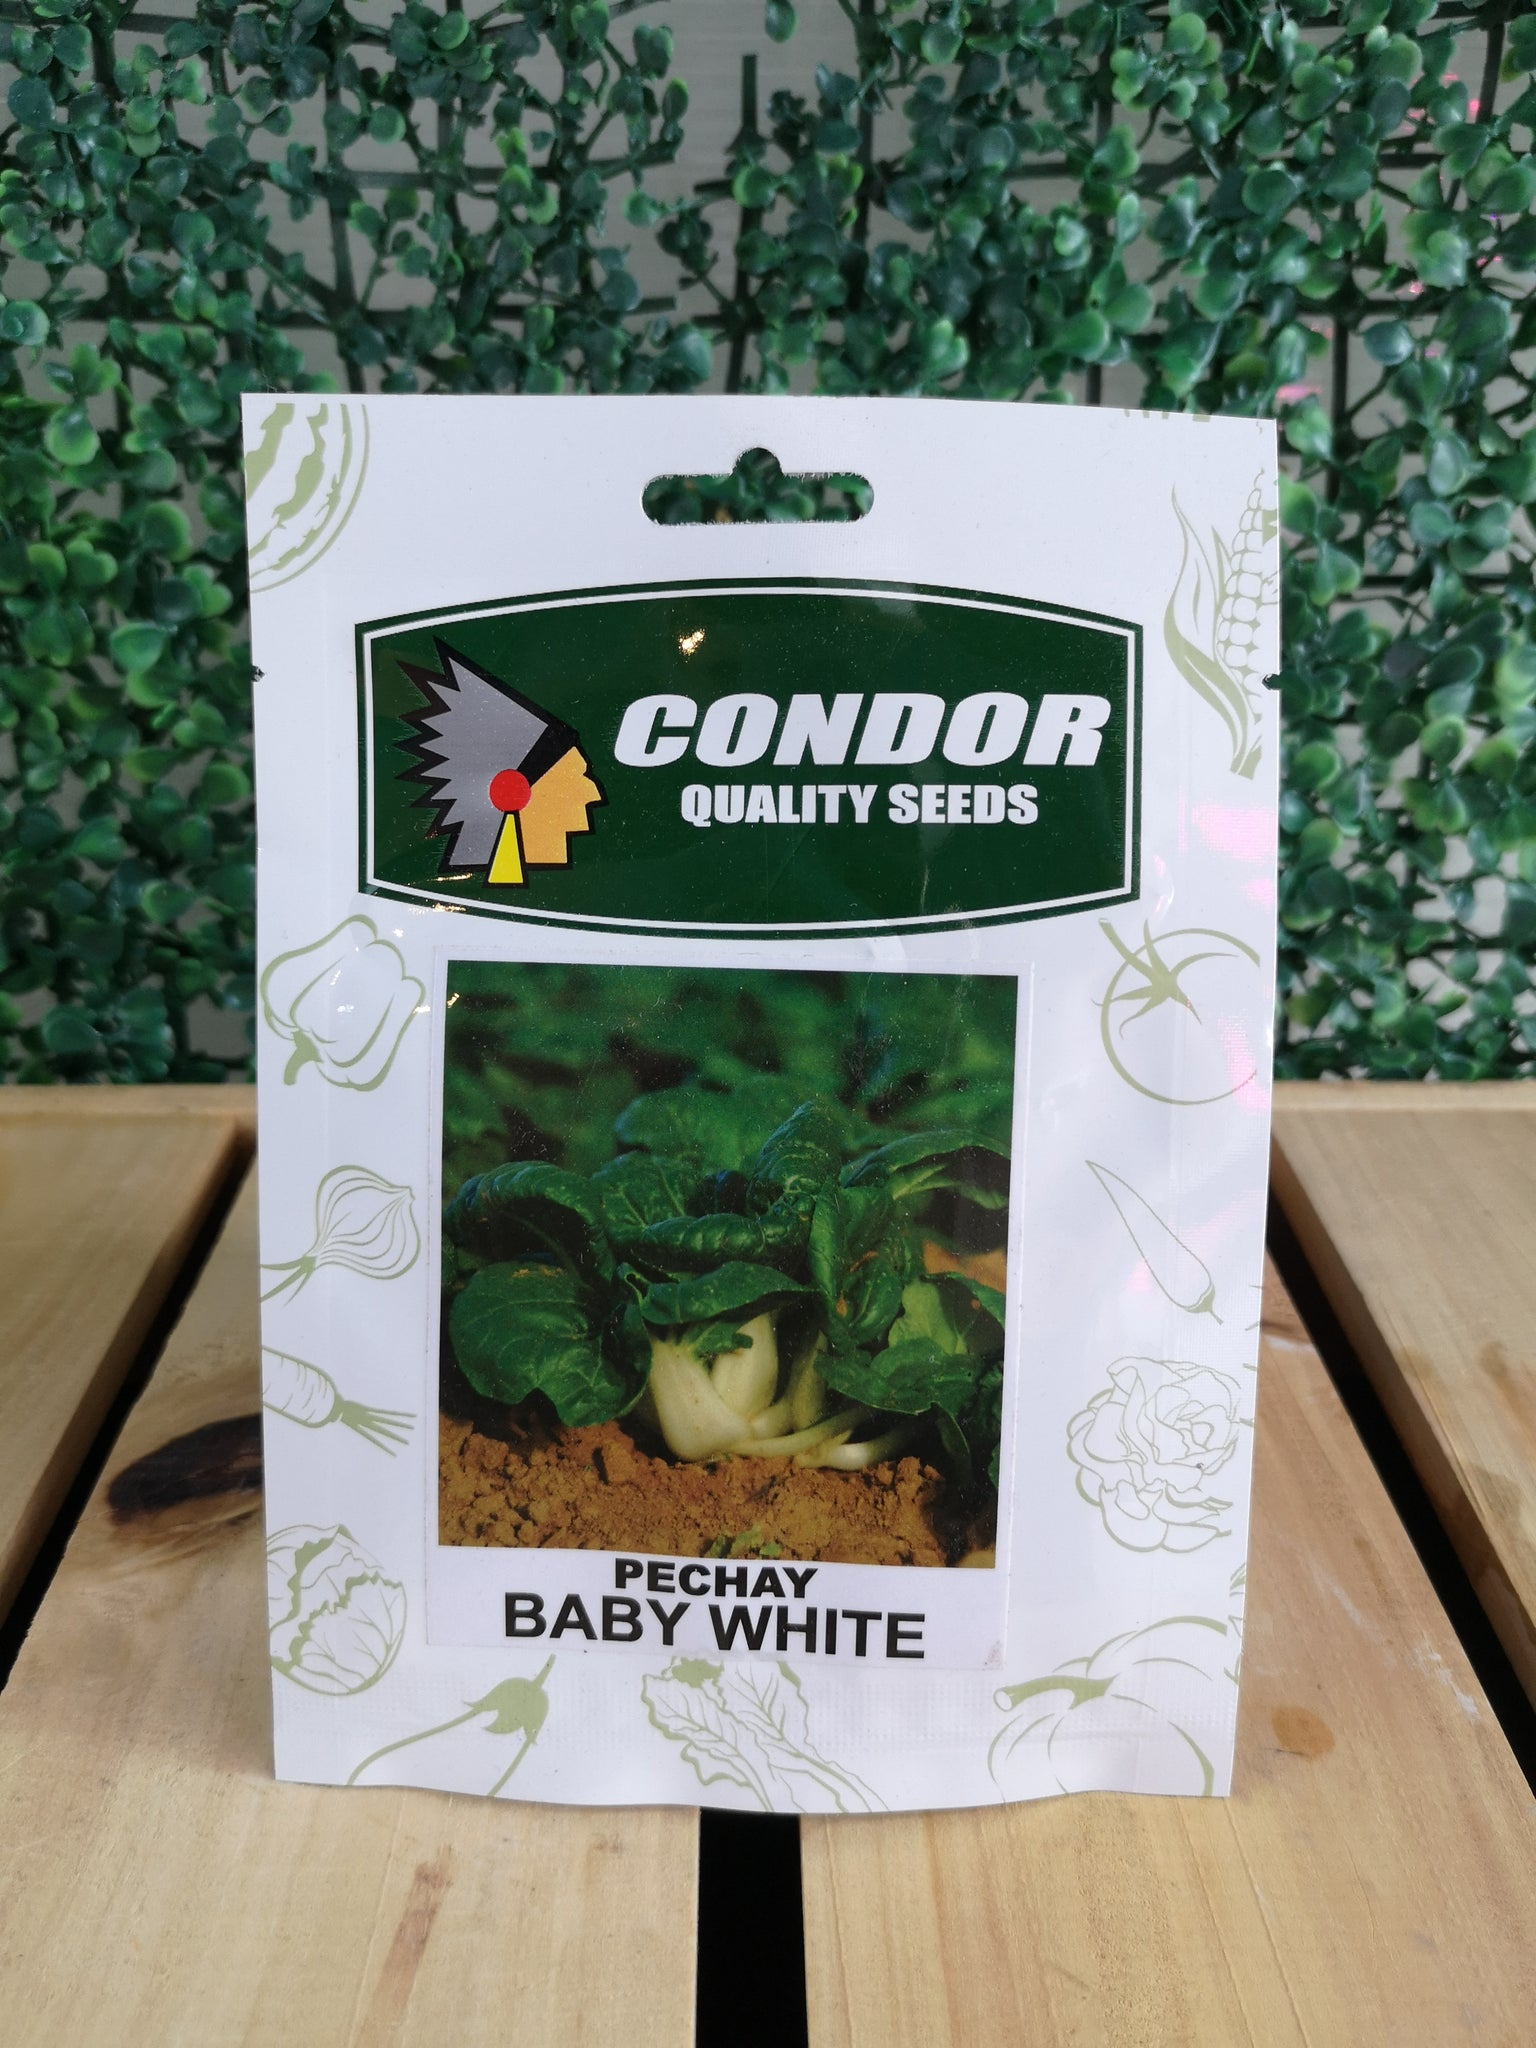 Condor Quality Seeds Pechay Baby White 5 grams